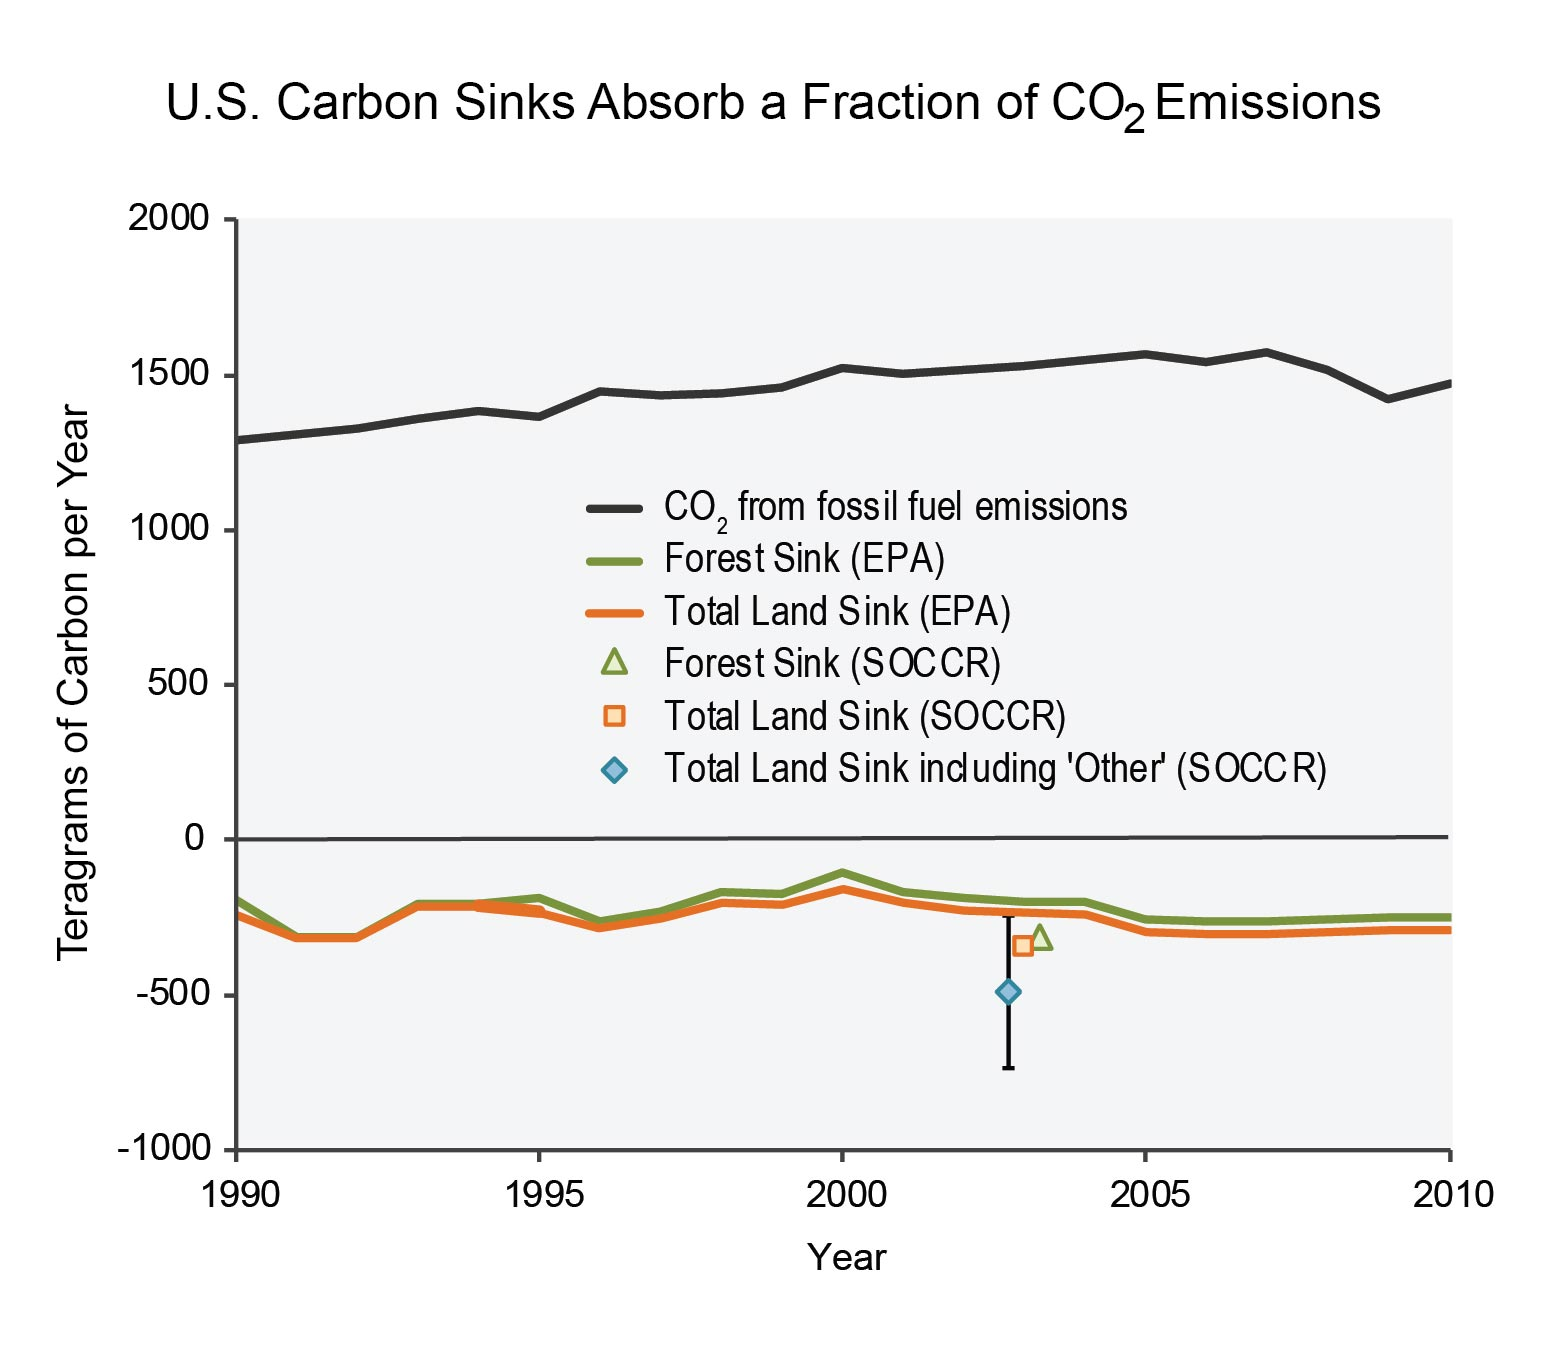 Biogeochemical cycles national climate assessment figure 155 us carbon sinks absorb a fraction of co2 emissions ccuart Choice Image